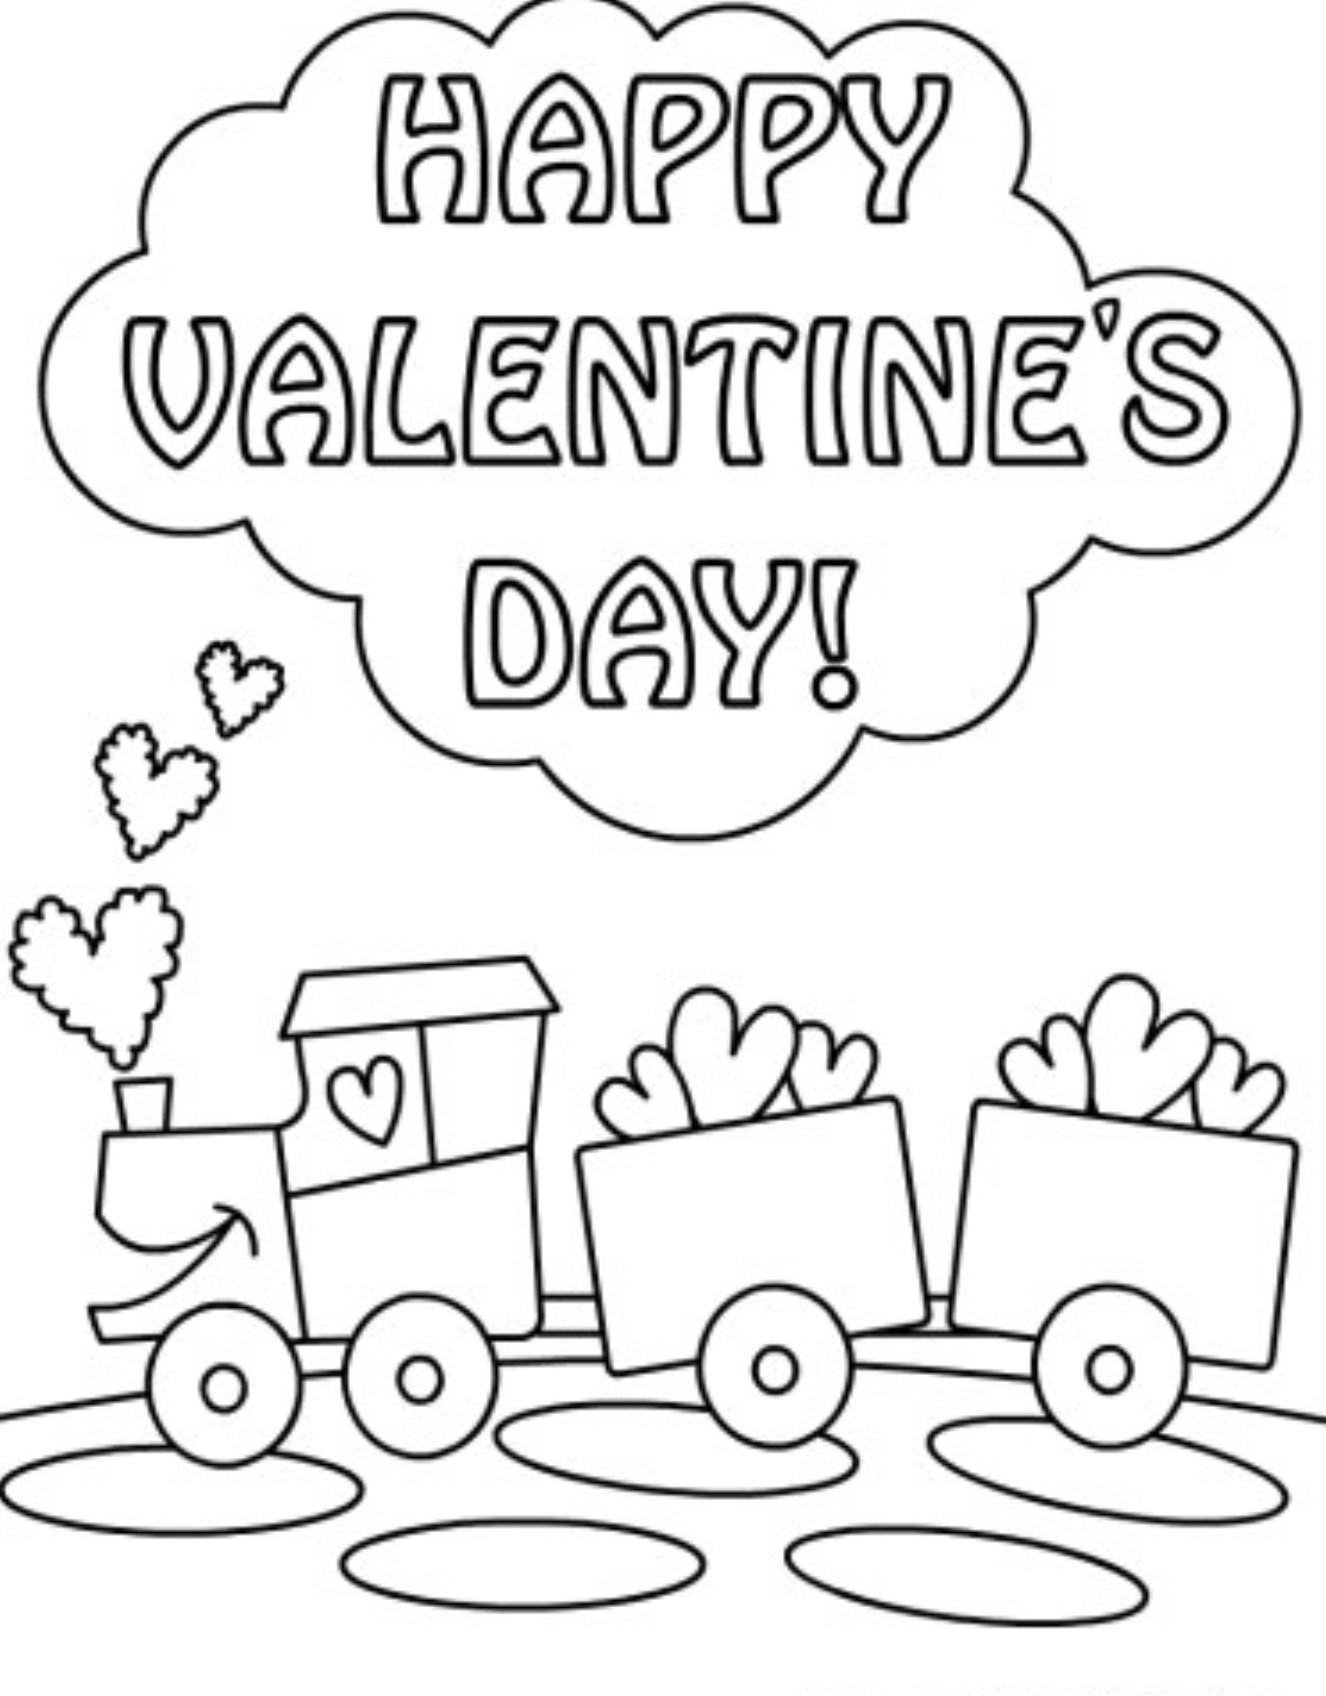 1326x1696 Happy Valentines Day Coloring Pages New Happy Valentines Day